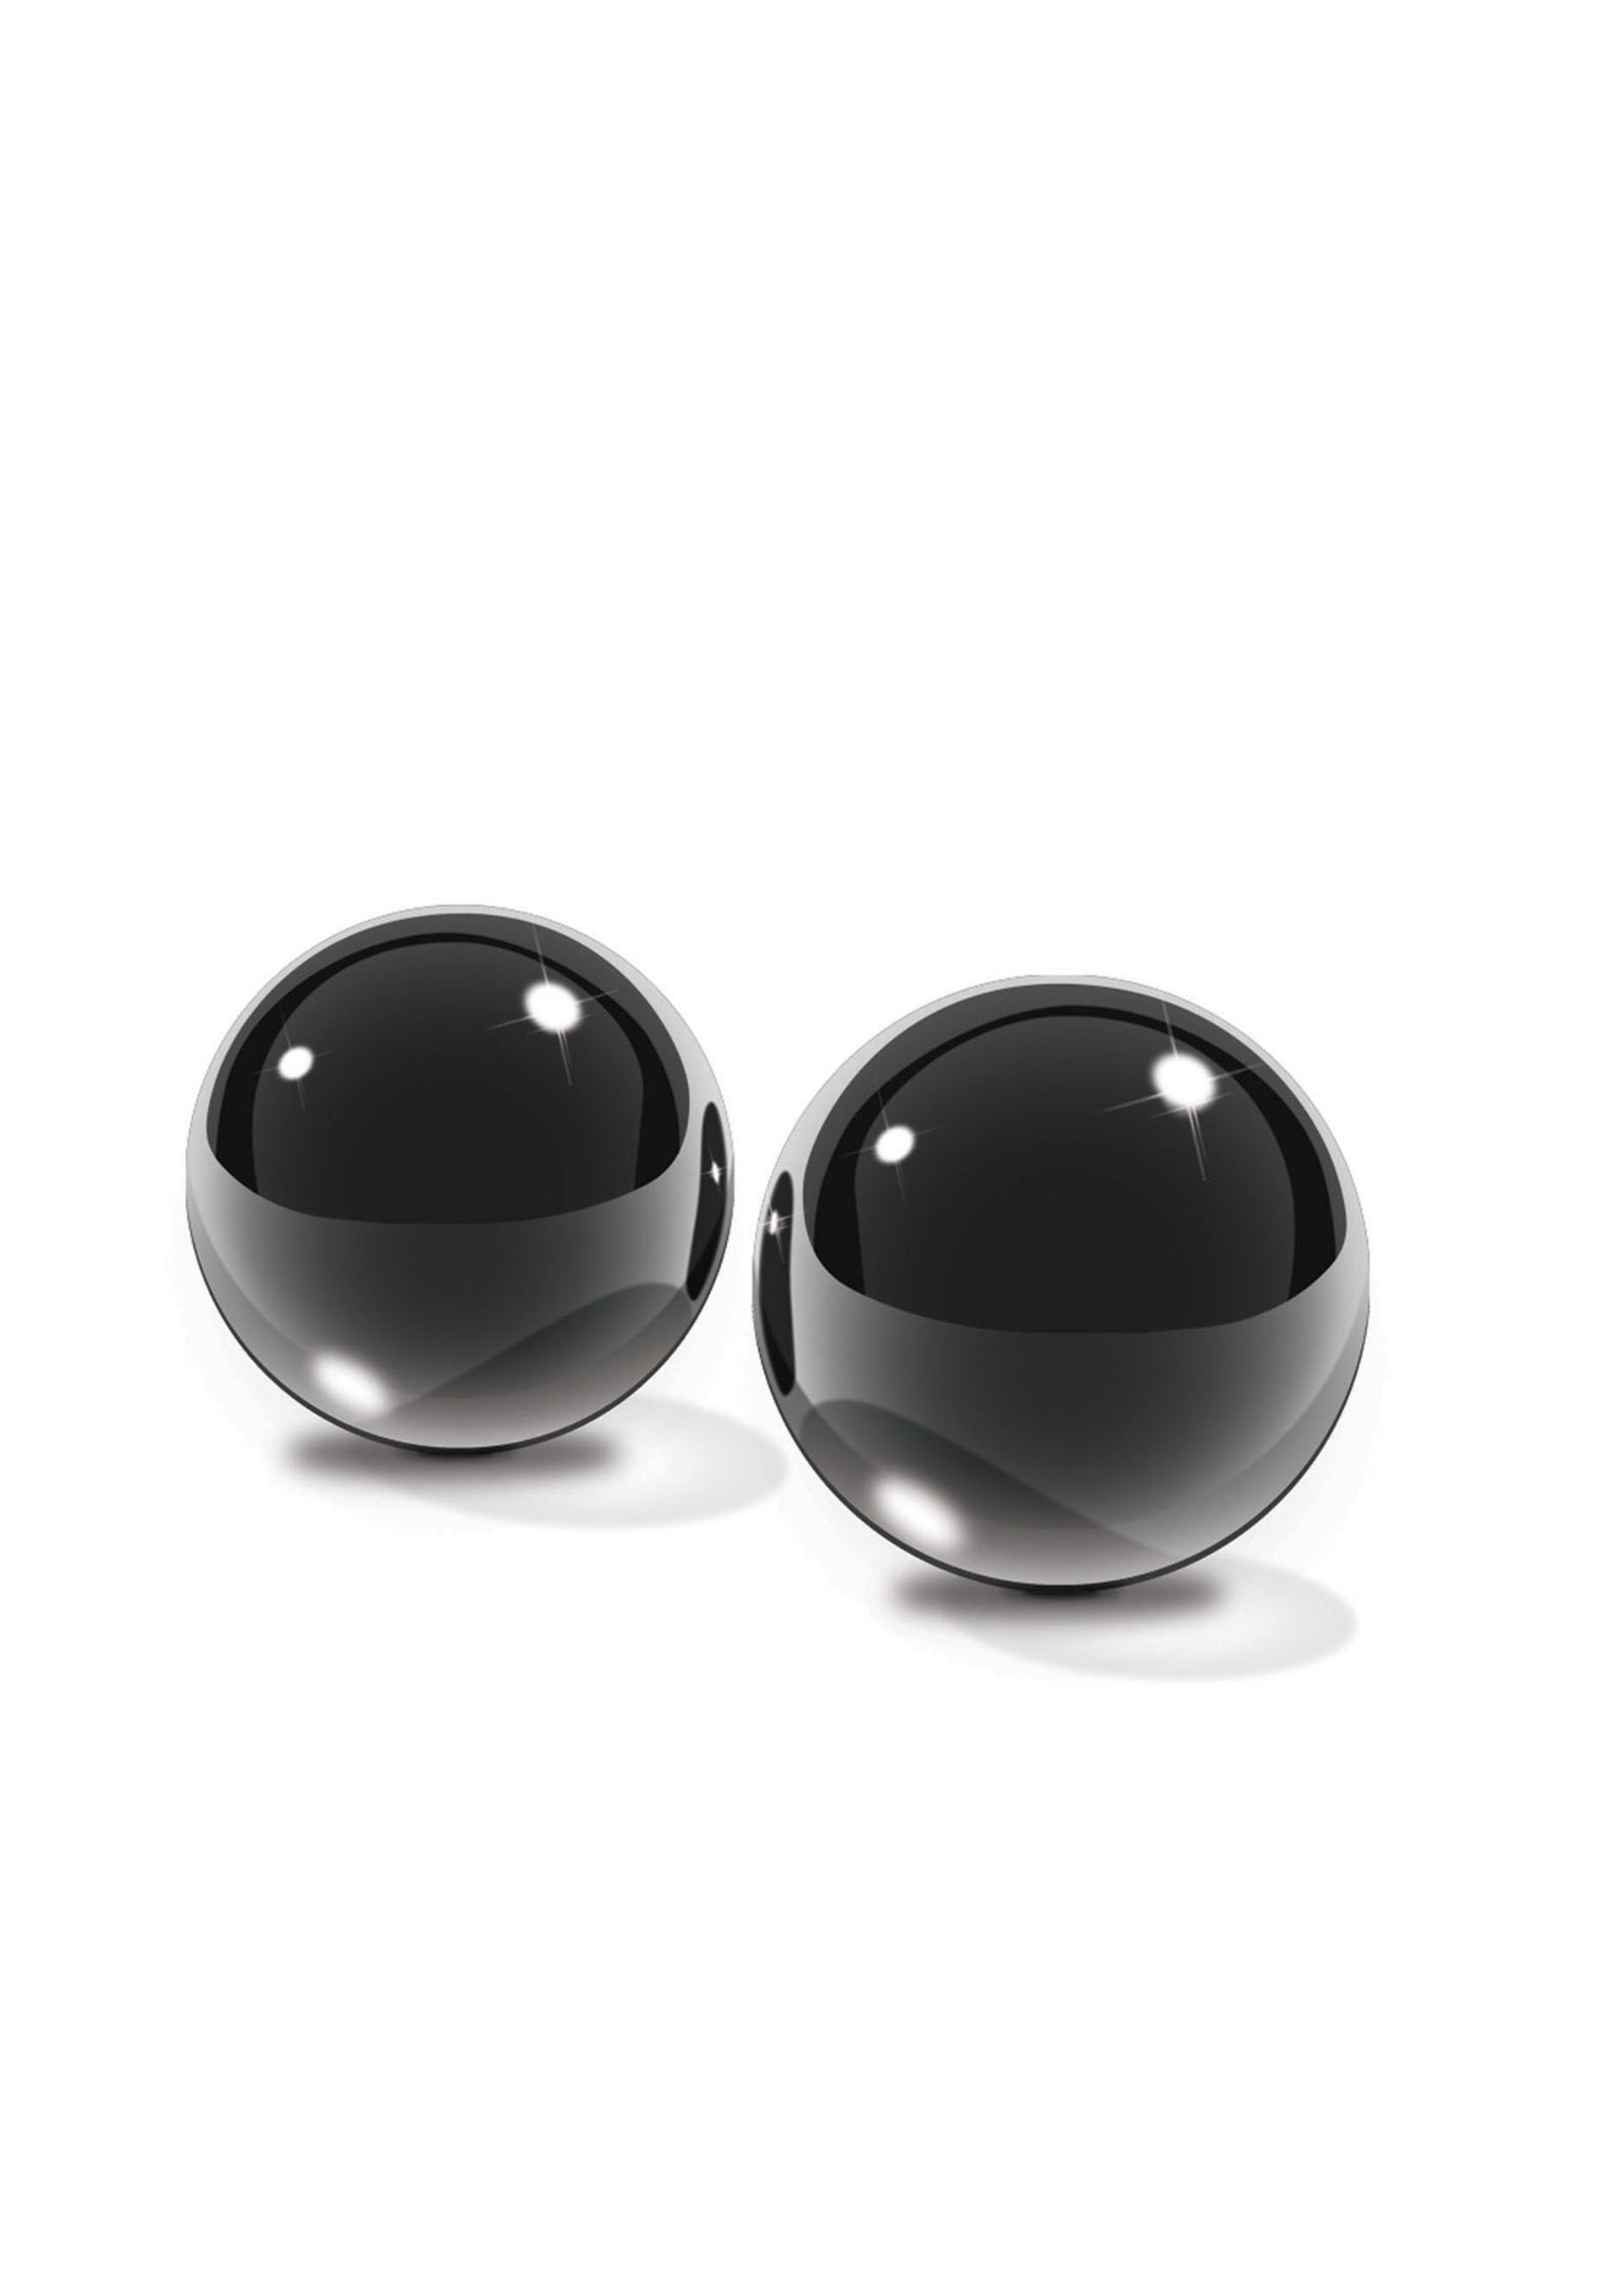 Black Glass Ben-Wa Balls.